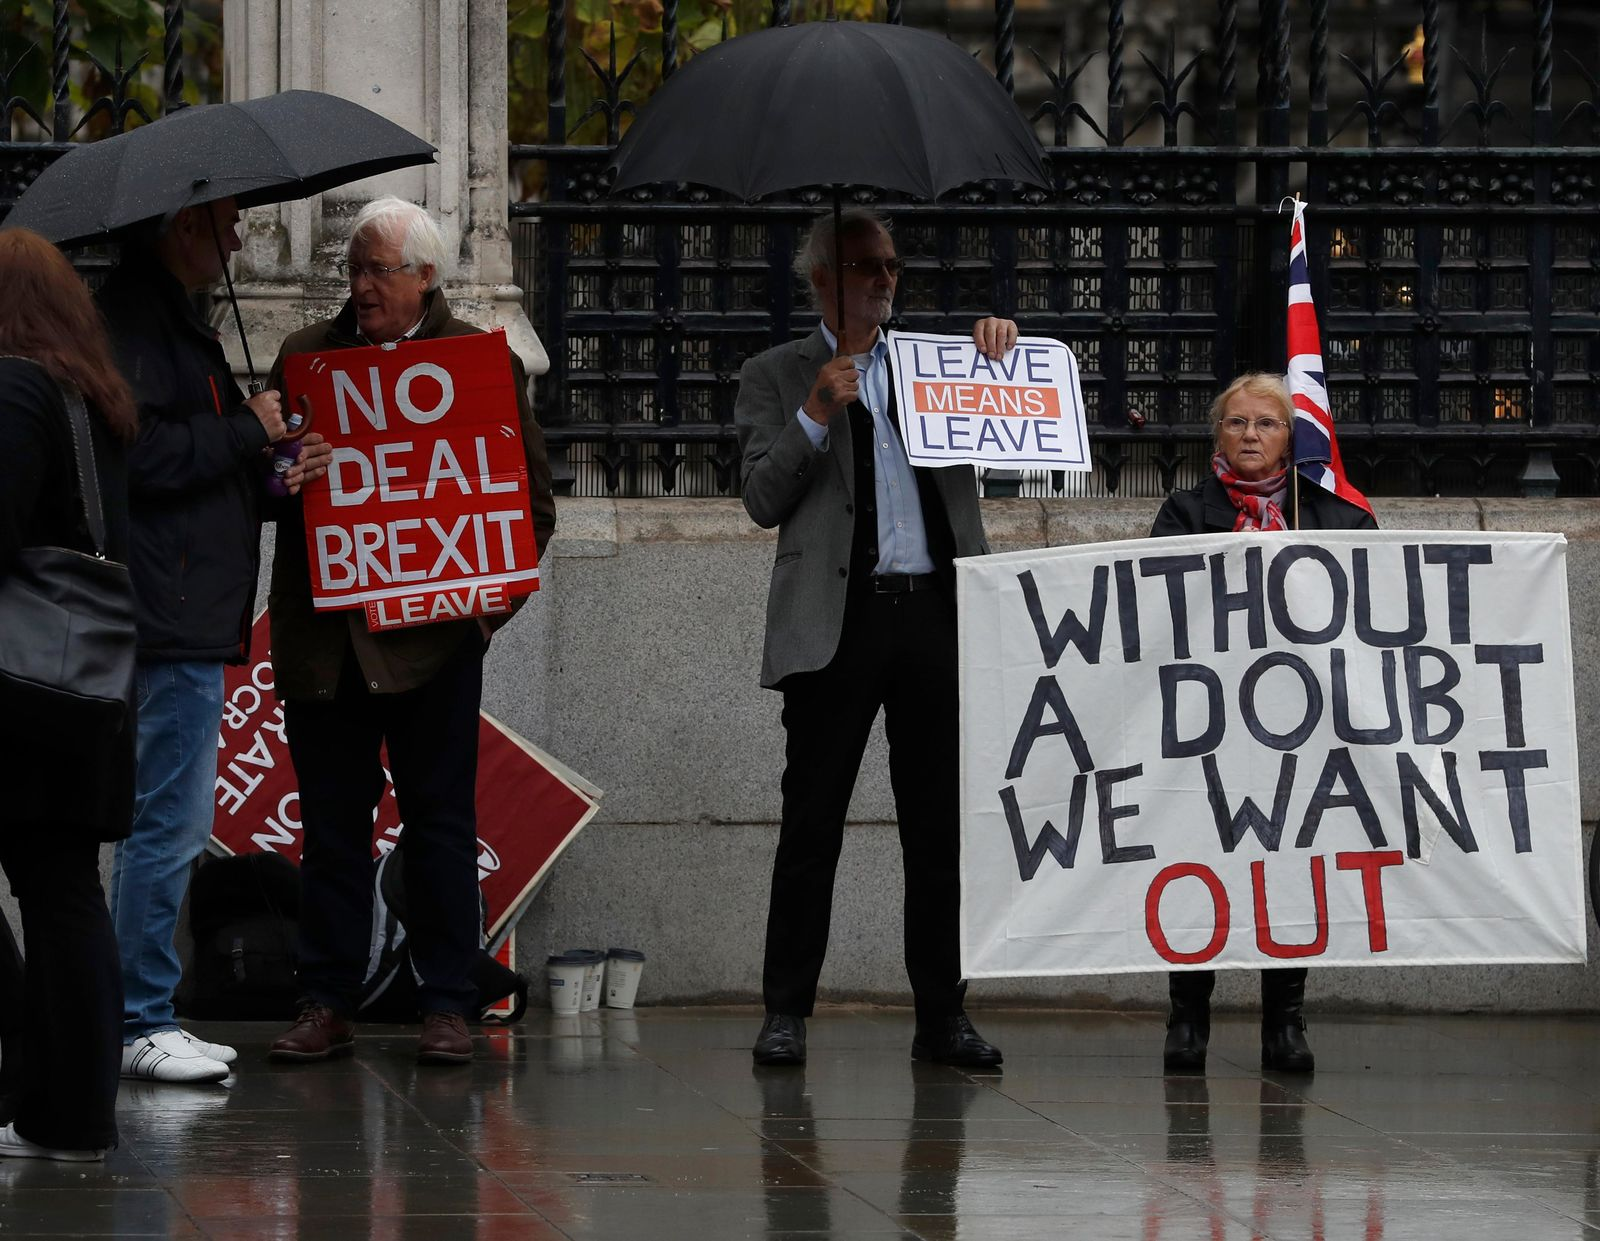 Pro-Brexit campaigners stand under umbrellas with their placards outside the Houses of Parliament in London, Monday, Oct. 21, 2019. (AP Photo/Alastair Grant)